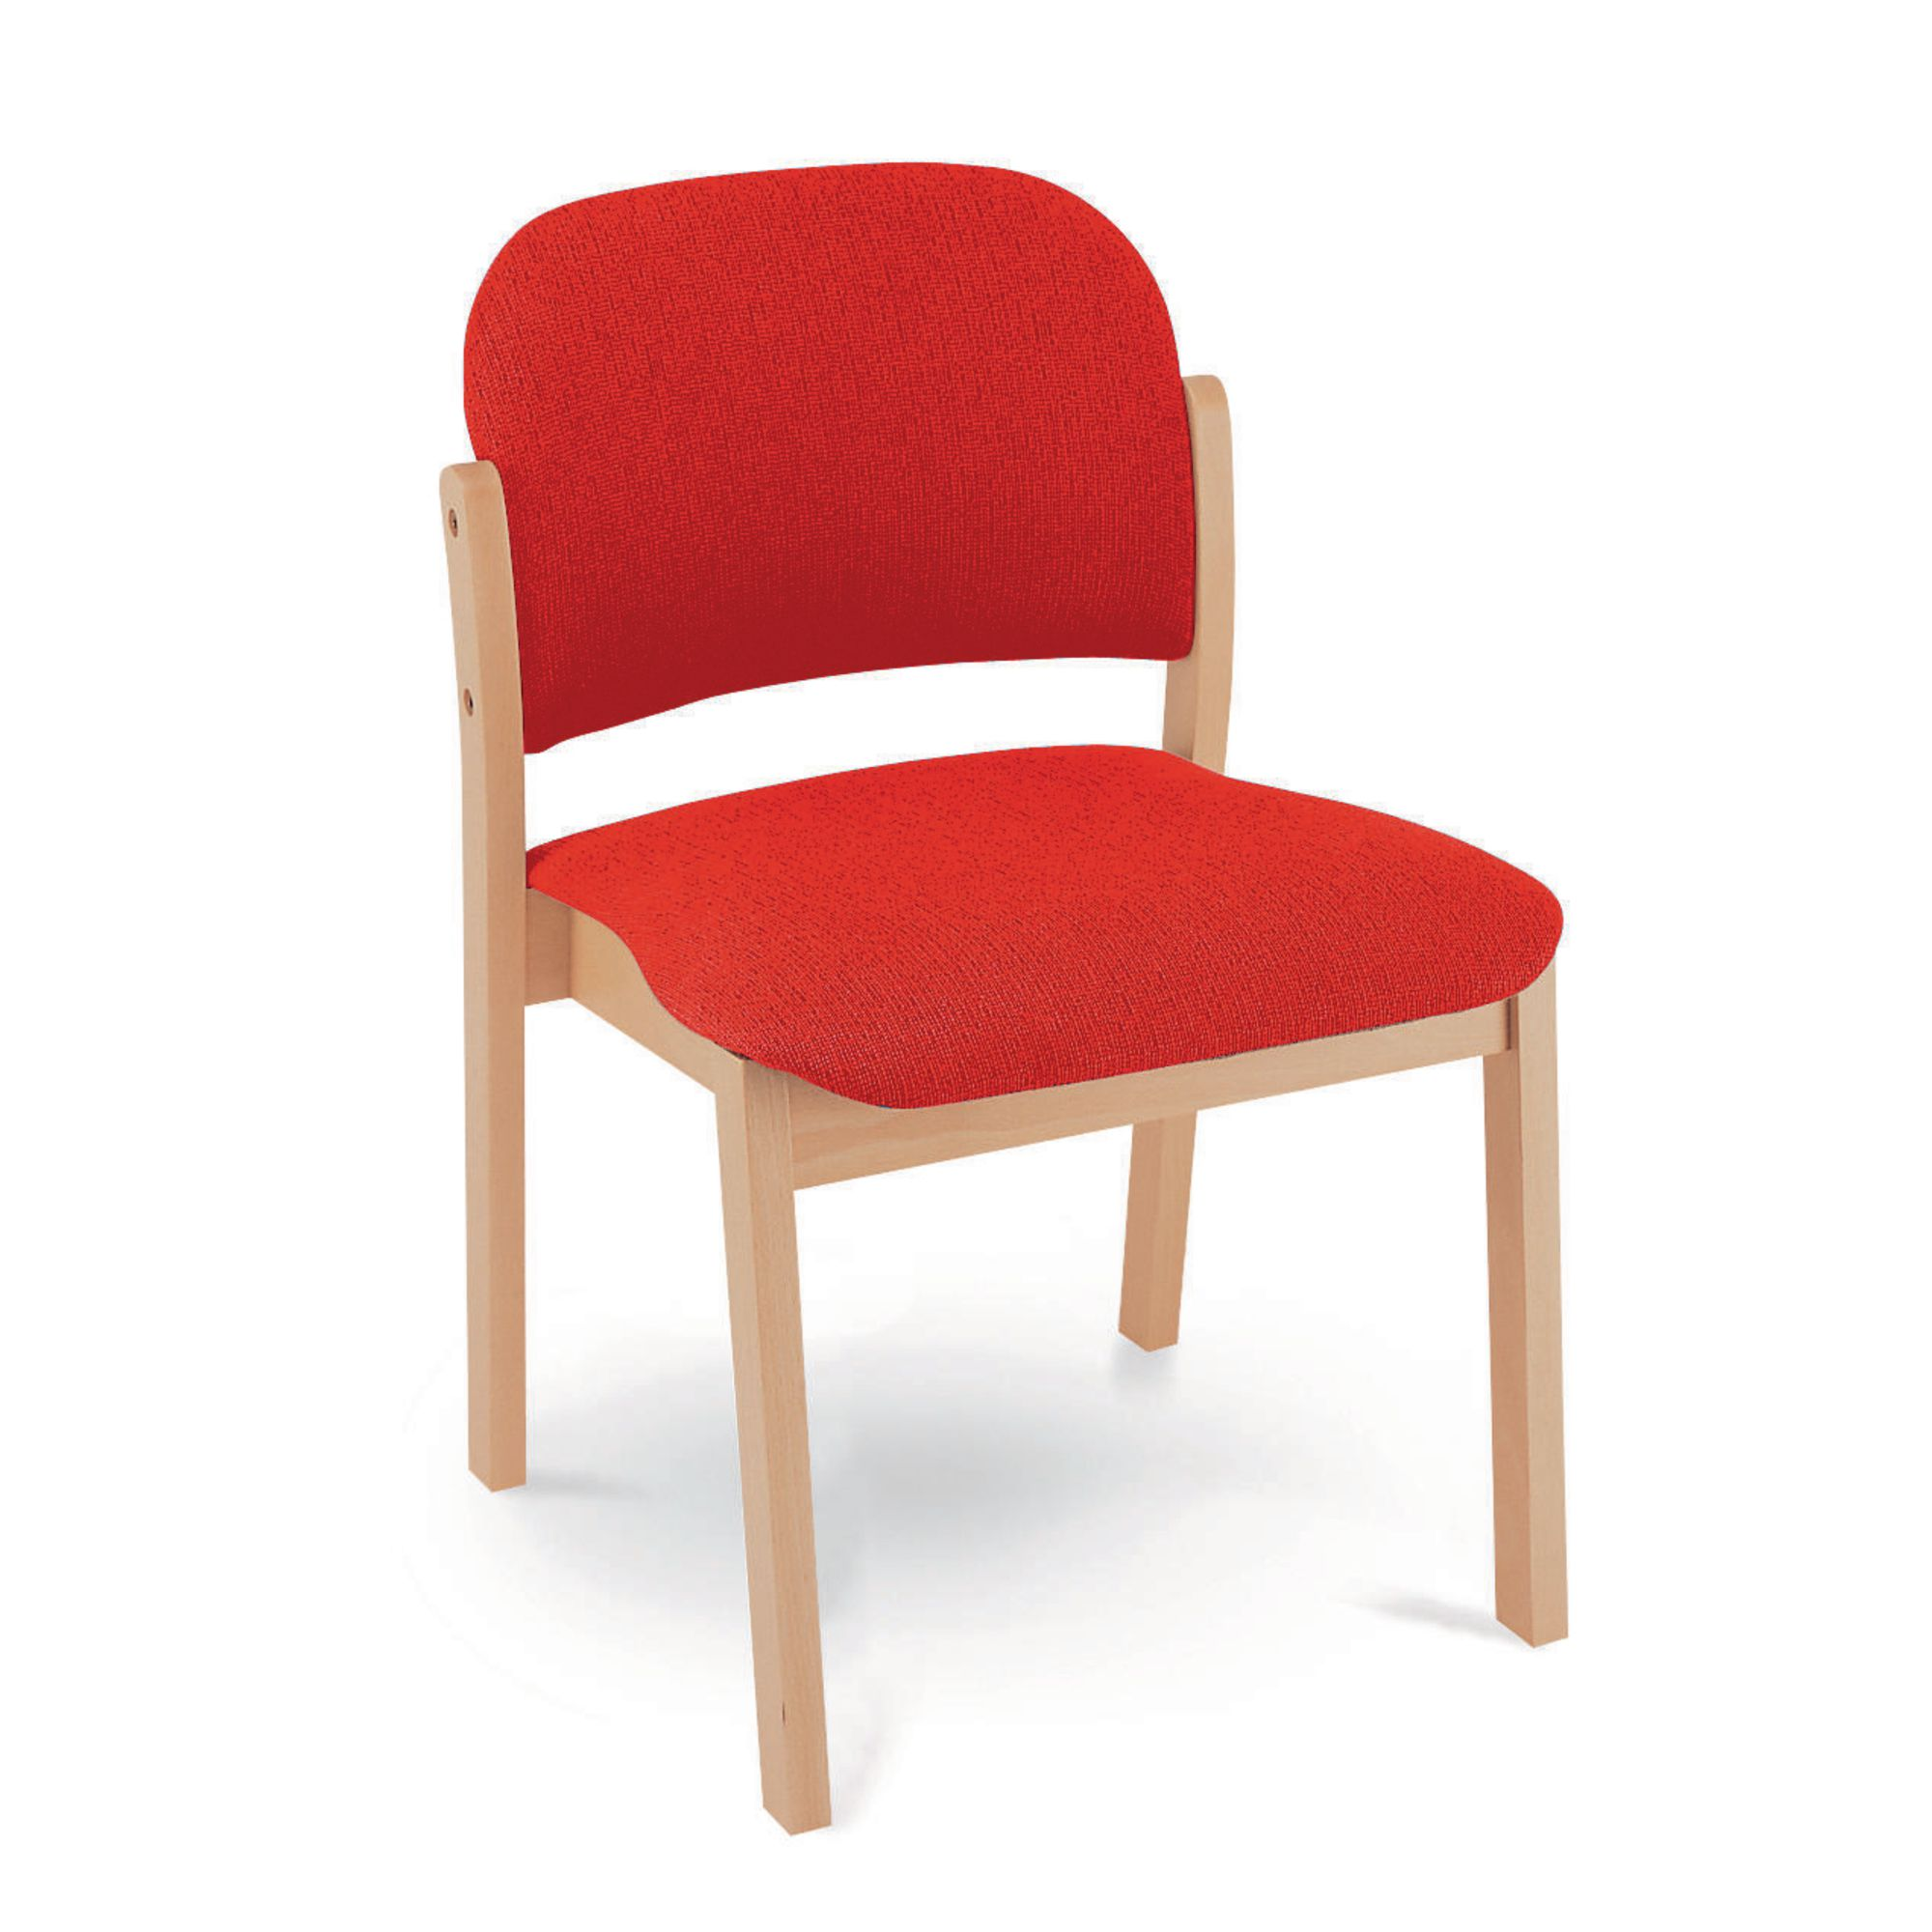 Merveilleux Upholstered Chair Red